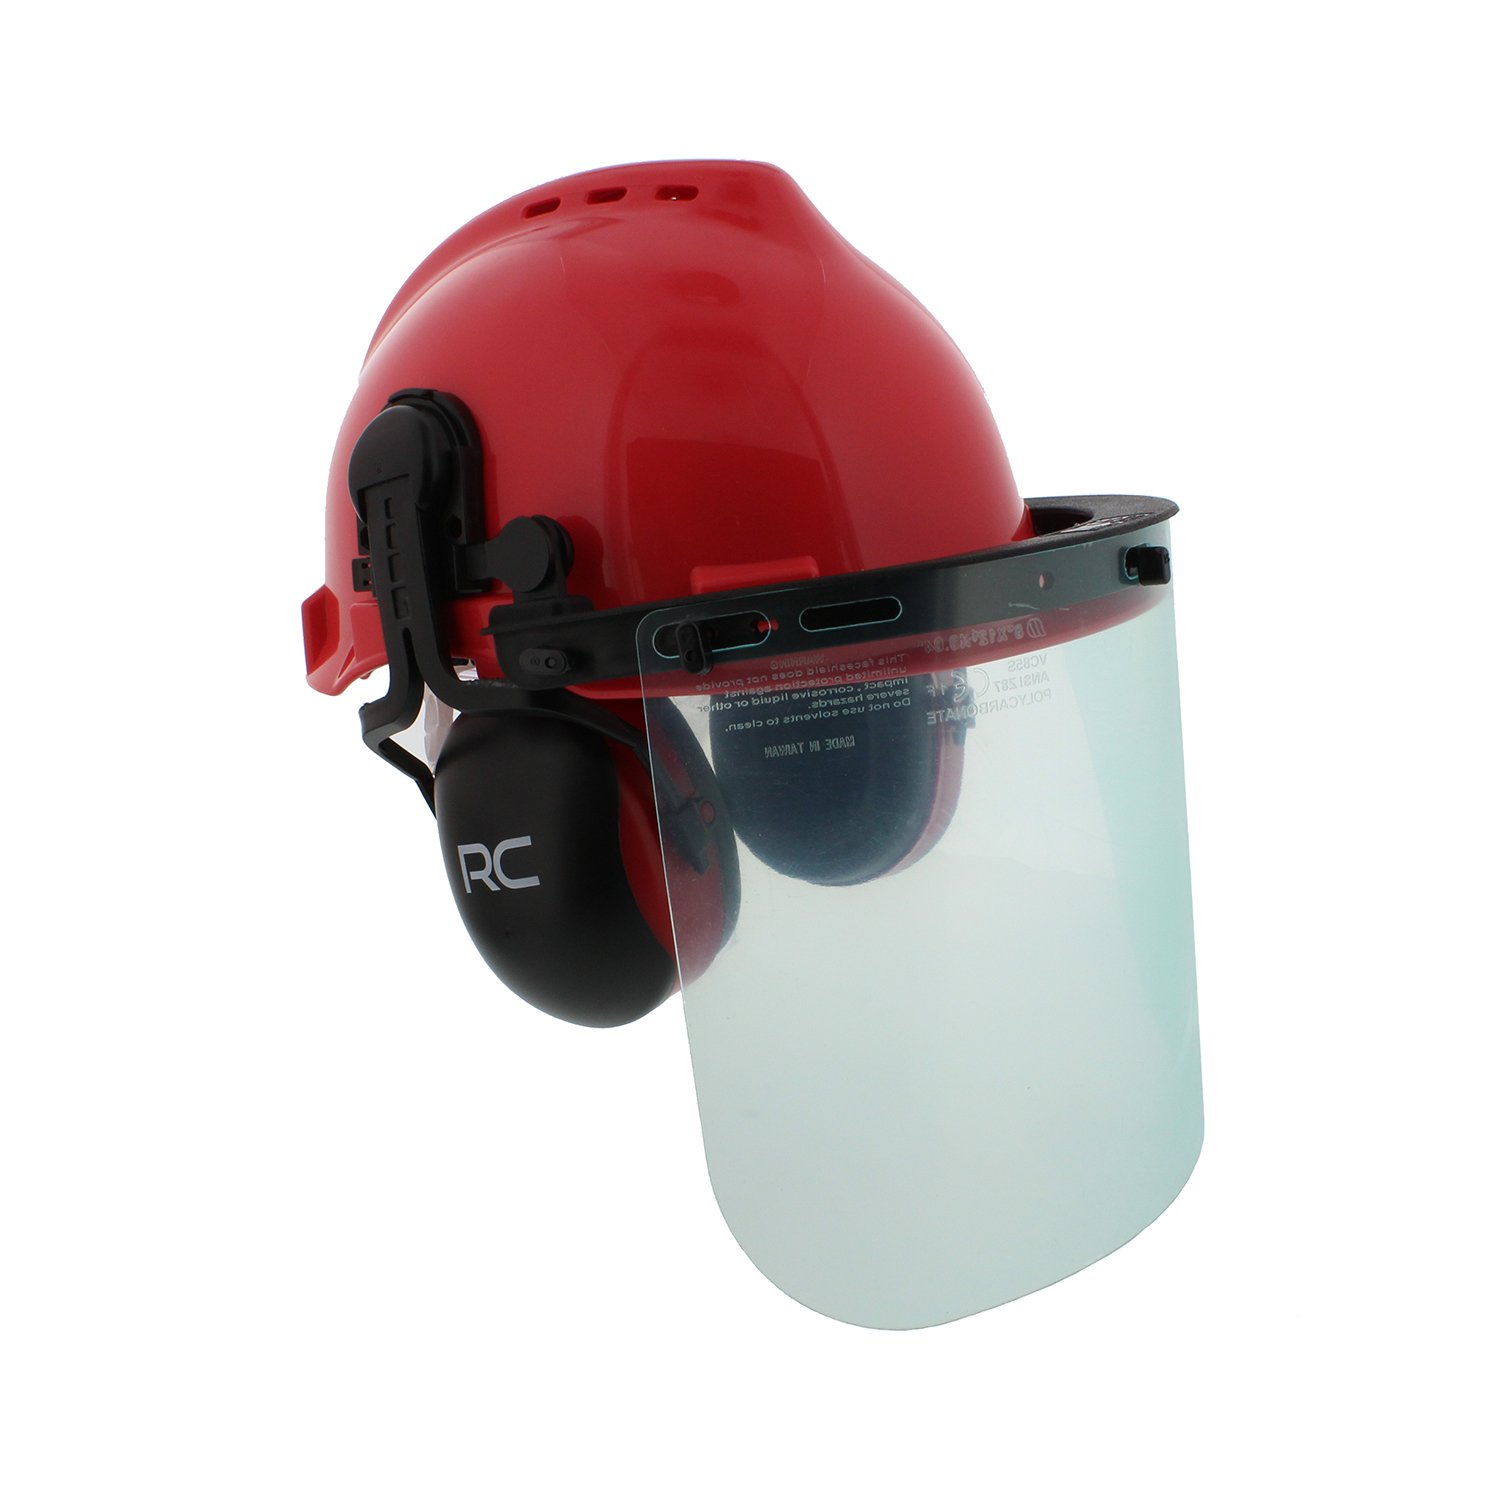 Forestry Safety Helmet – Vented Hard Hat, Mesh and Plastic Visors, Protective Earmuffs – Construction, Welding, Chainsaw